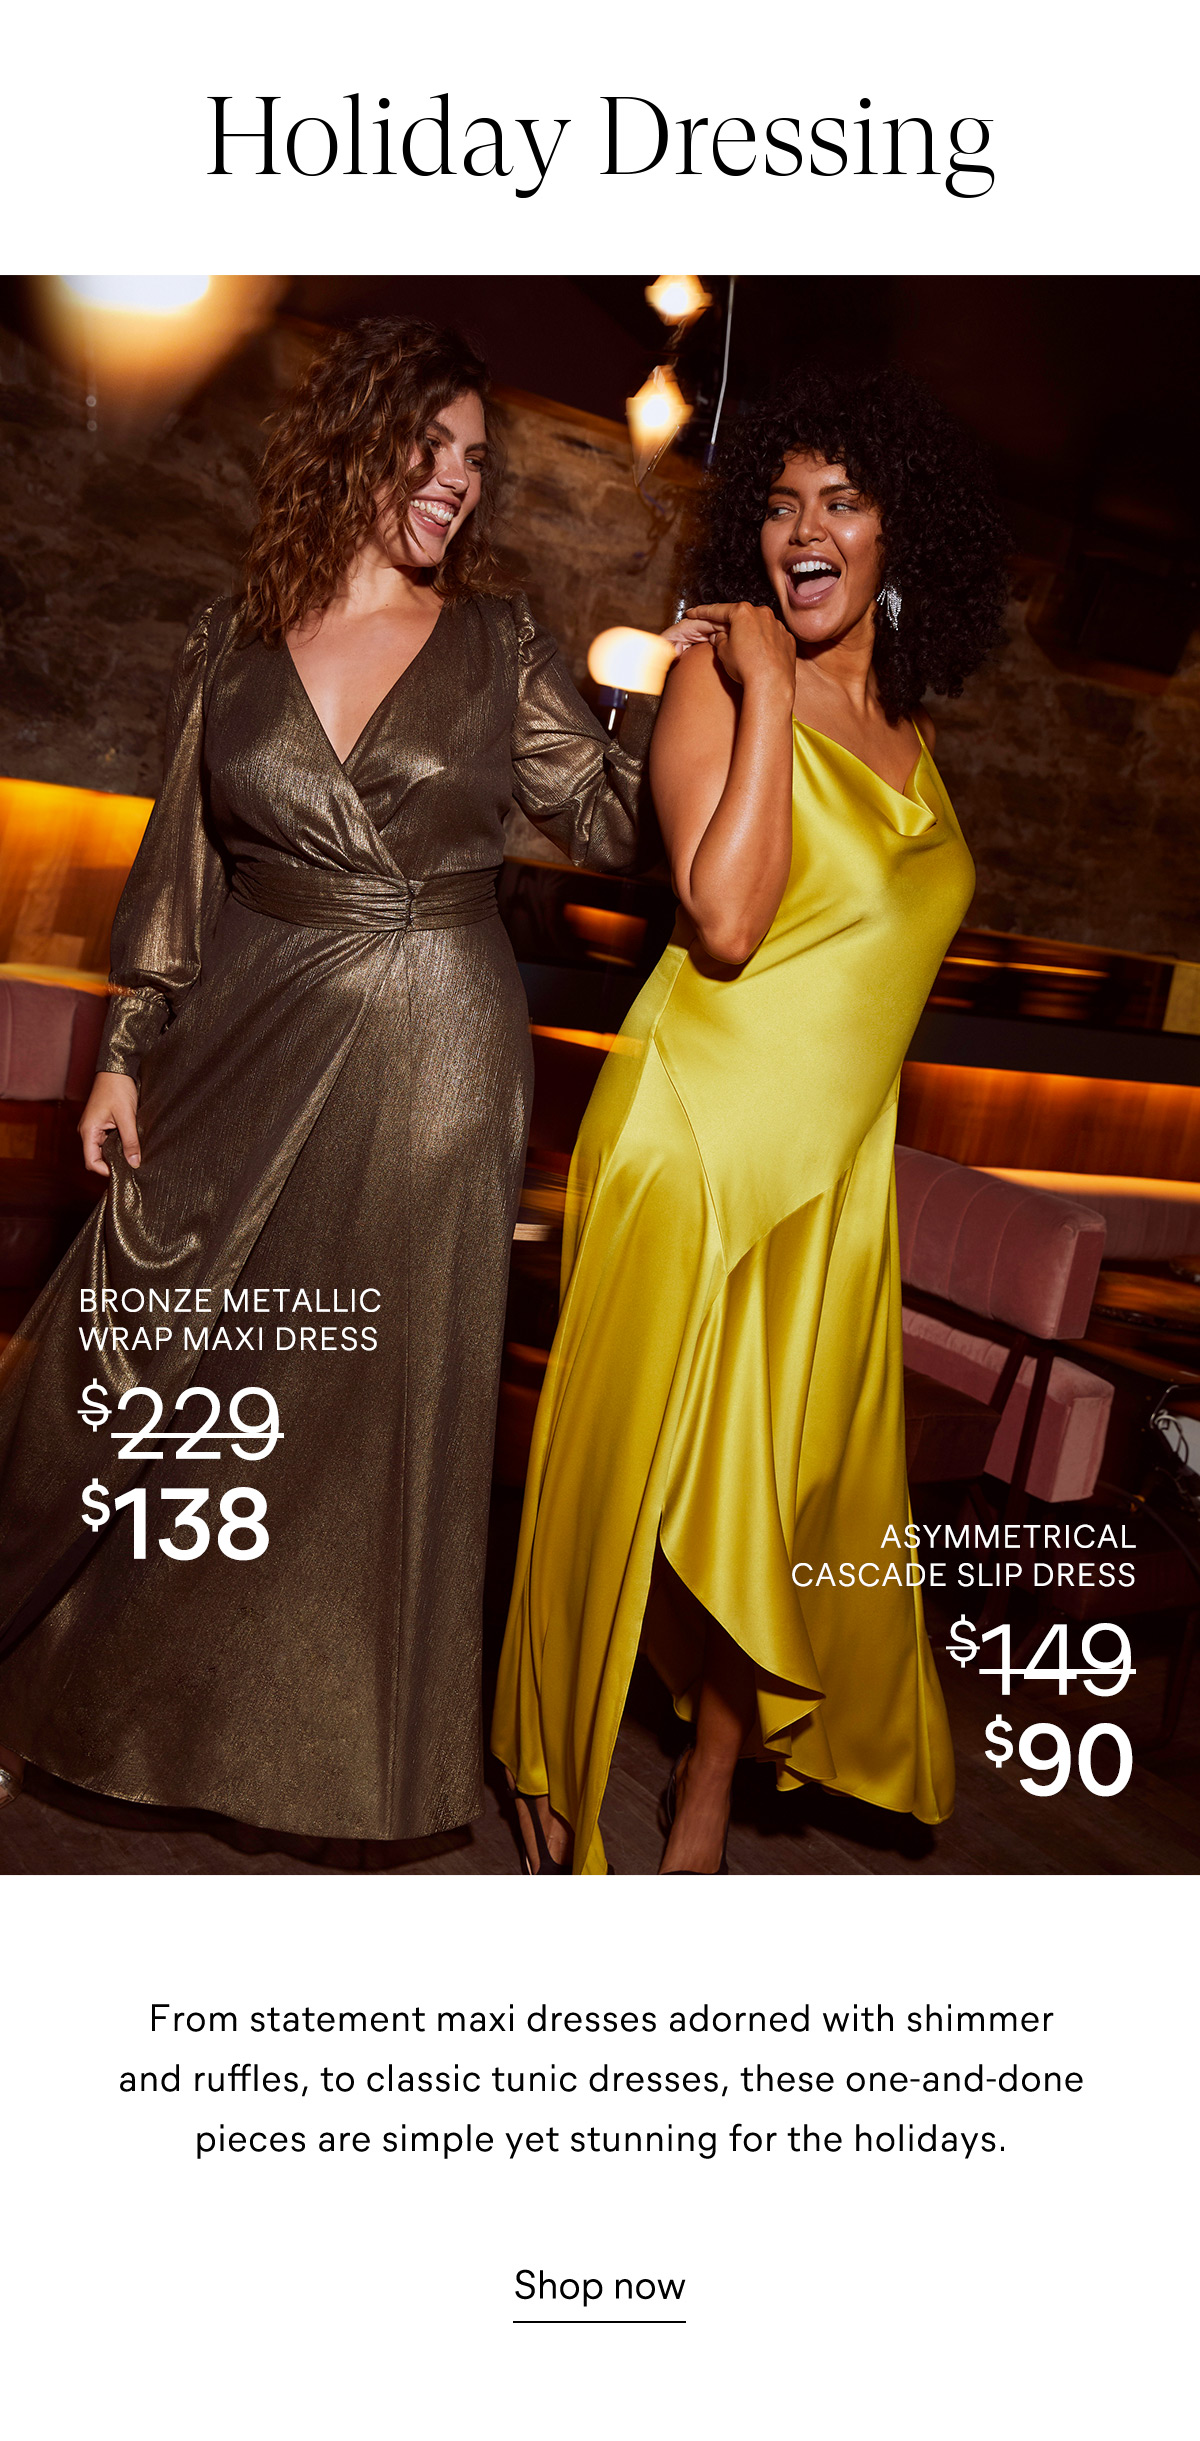 Holiday Dressing From statement maxi dresses adorned with shimmer and ruffles, to classic tunic dresses, these one and done pieces are simple yet stunning for the holidays. Shop now